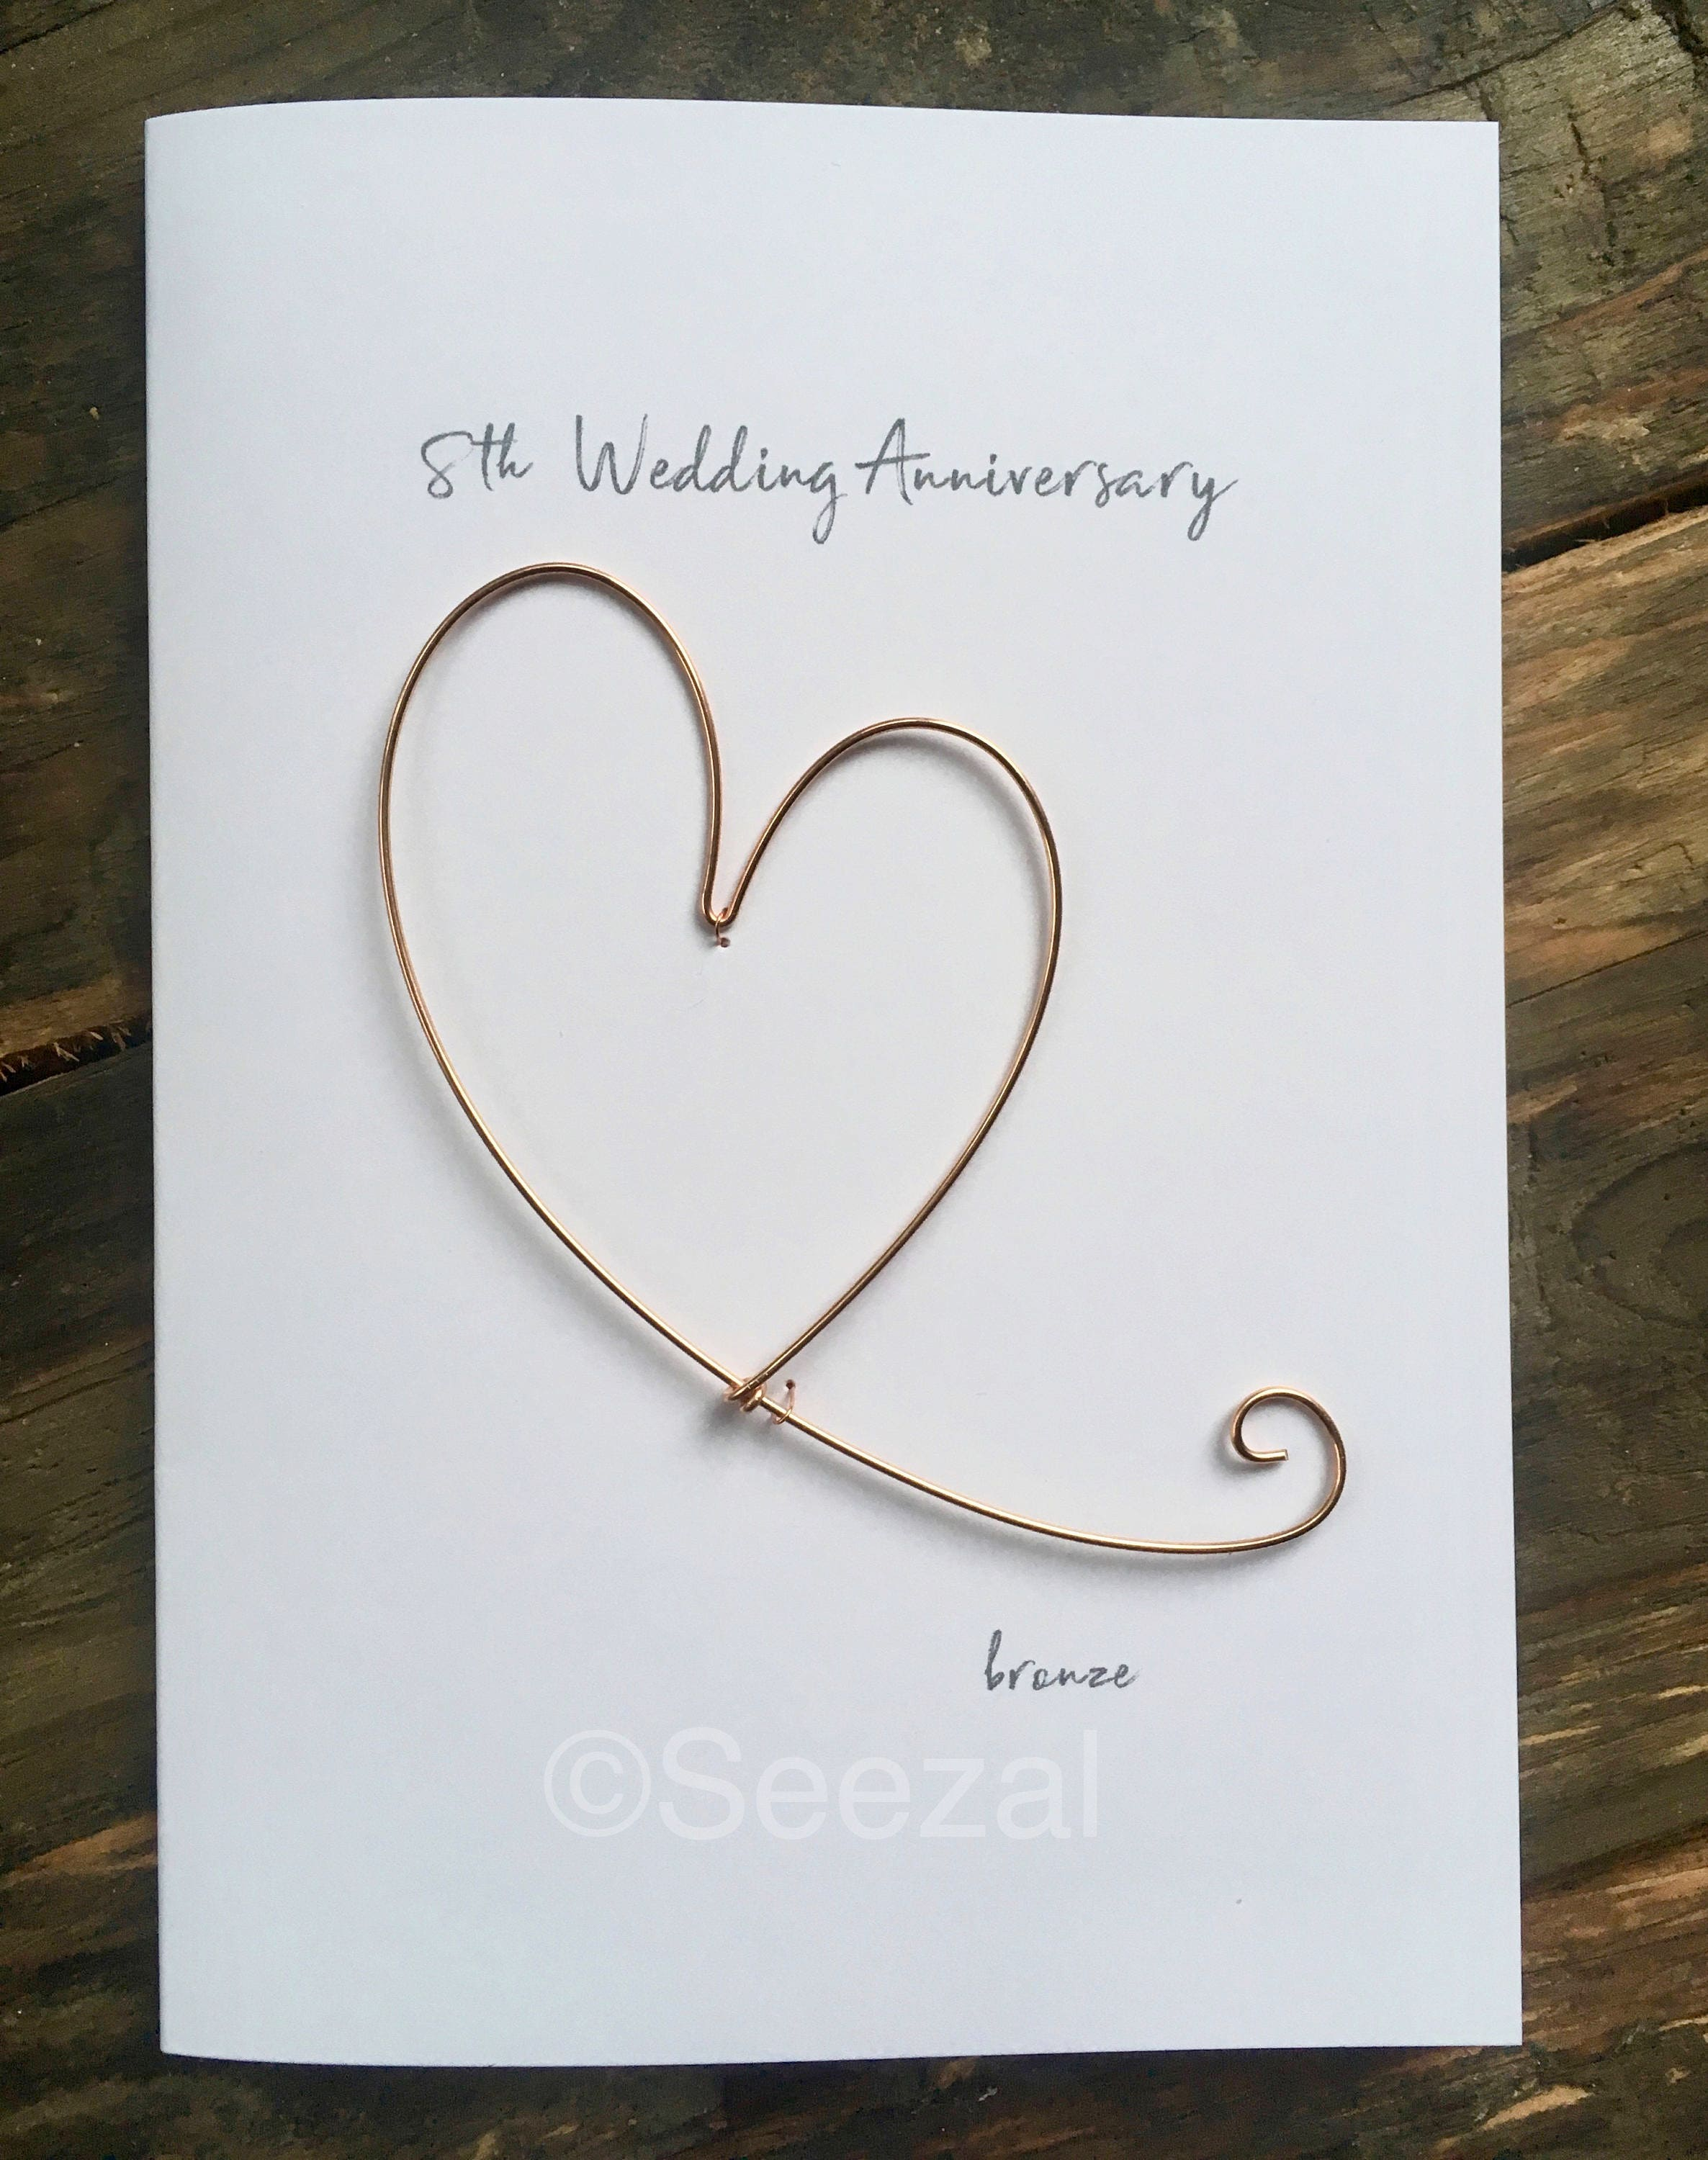 8th Wedding Anniversary.8th Wedding Anniversary Keepsake Minimalist Art Card Bronze Wire Heart 8 Years Traditional Gift Husband Wife Size A6 15x10 5cm